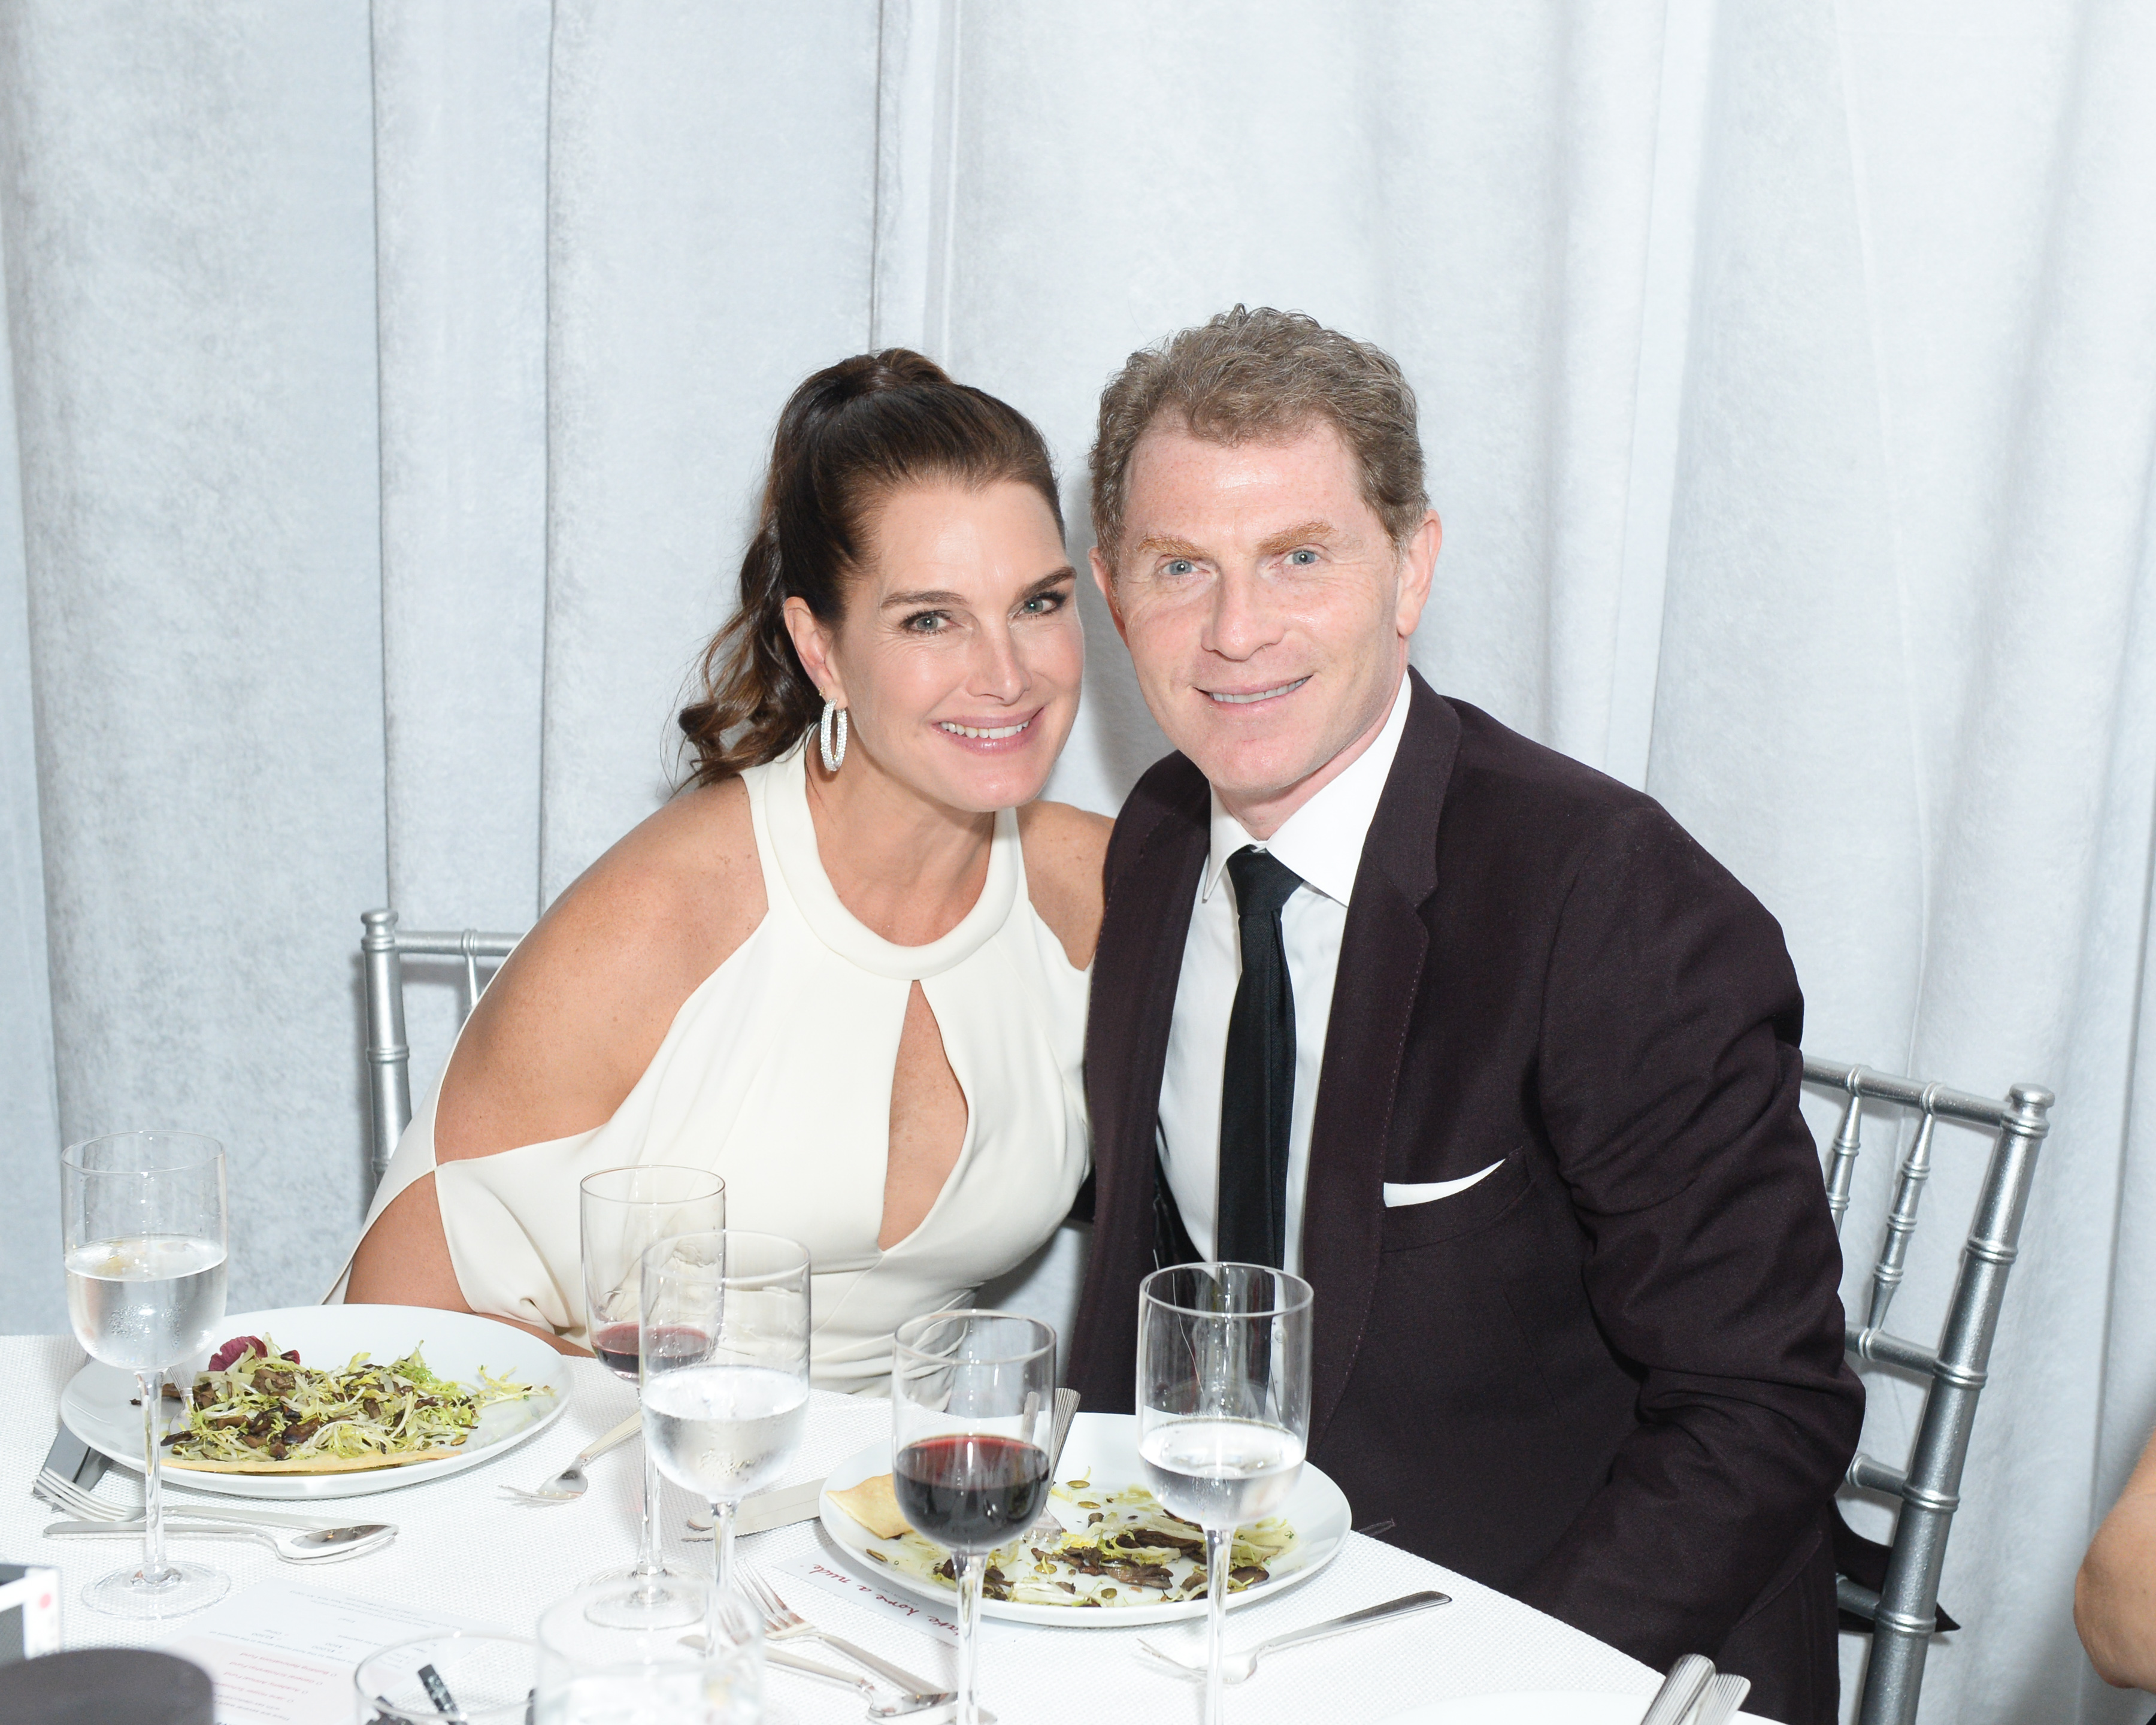 Brooke Shields and Bobby Flay.